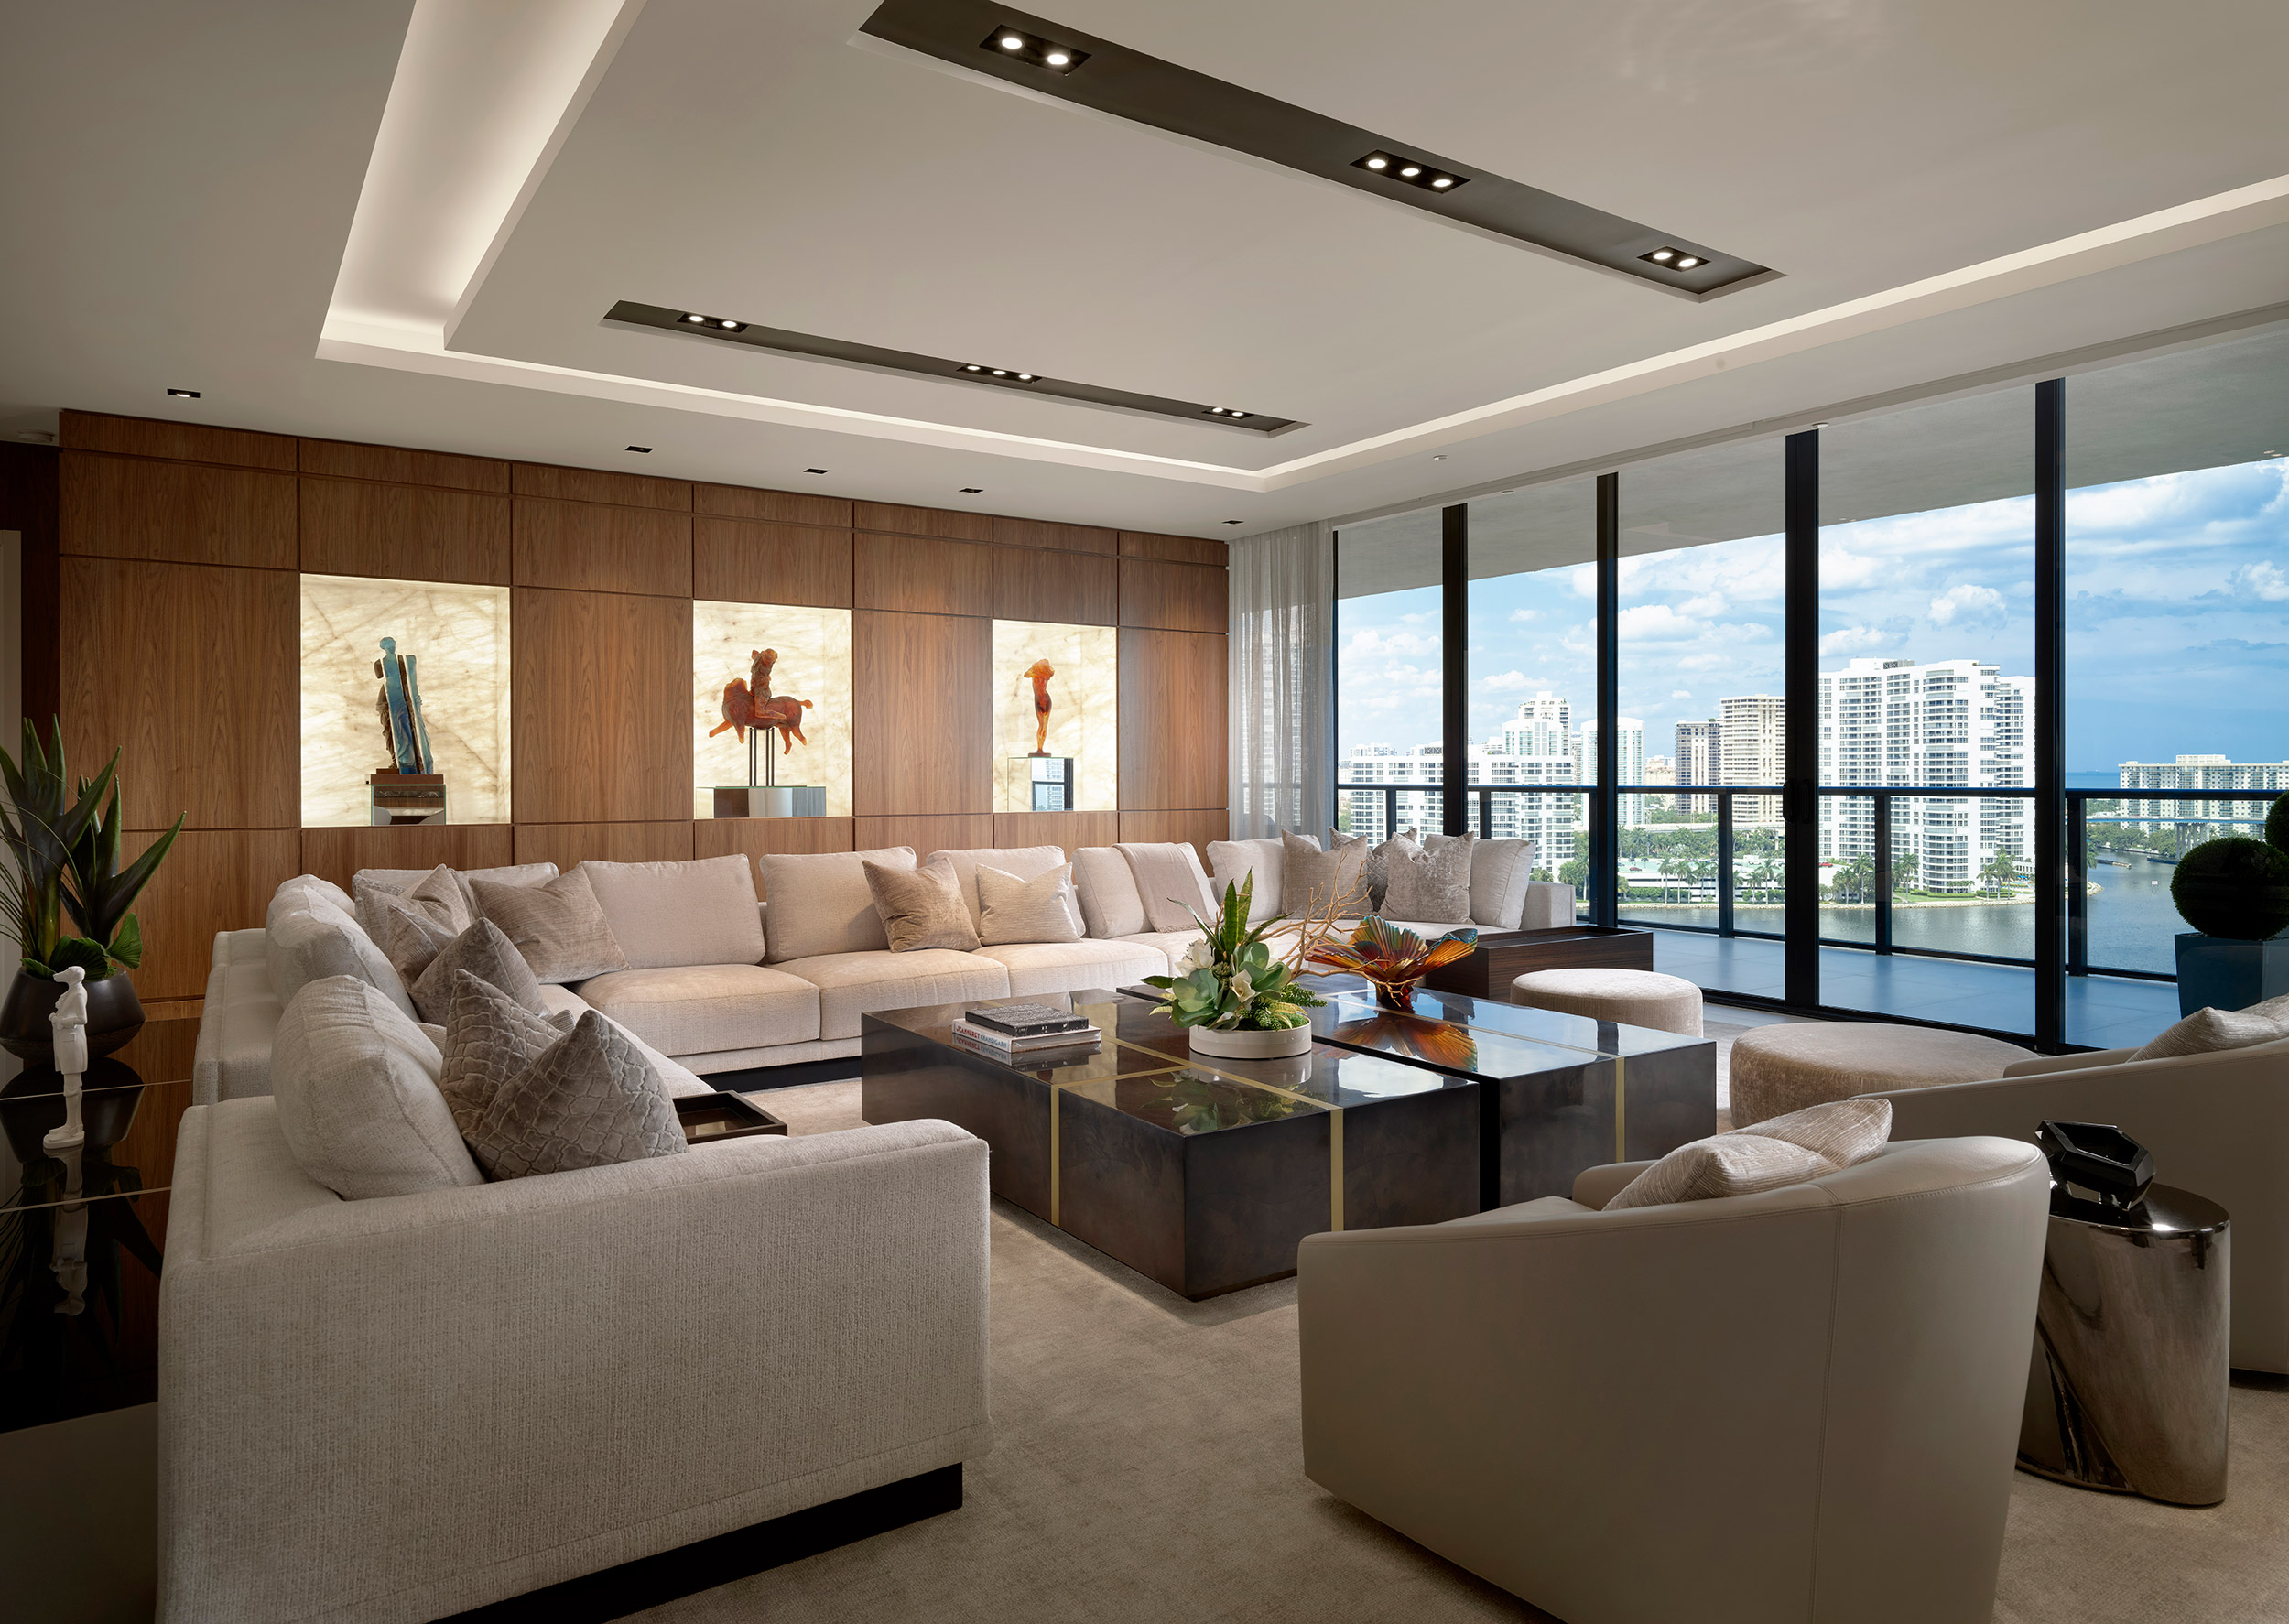 Luxury Interior Design In Miami